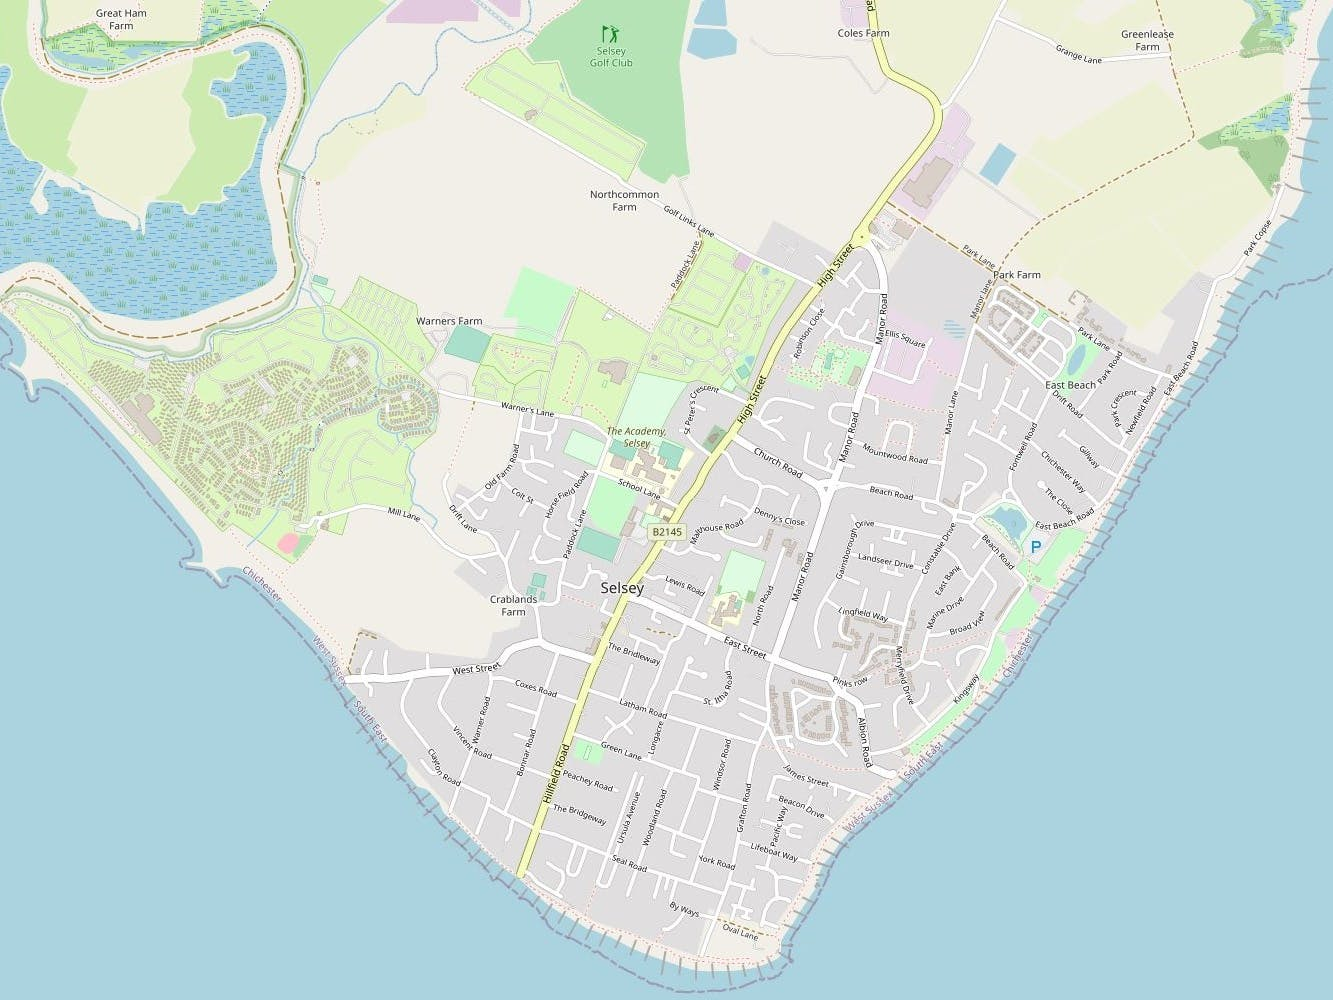 Road map showing all of Selsey, West Sussex